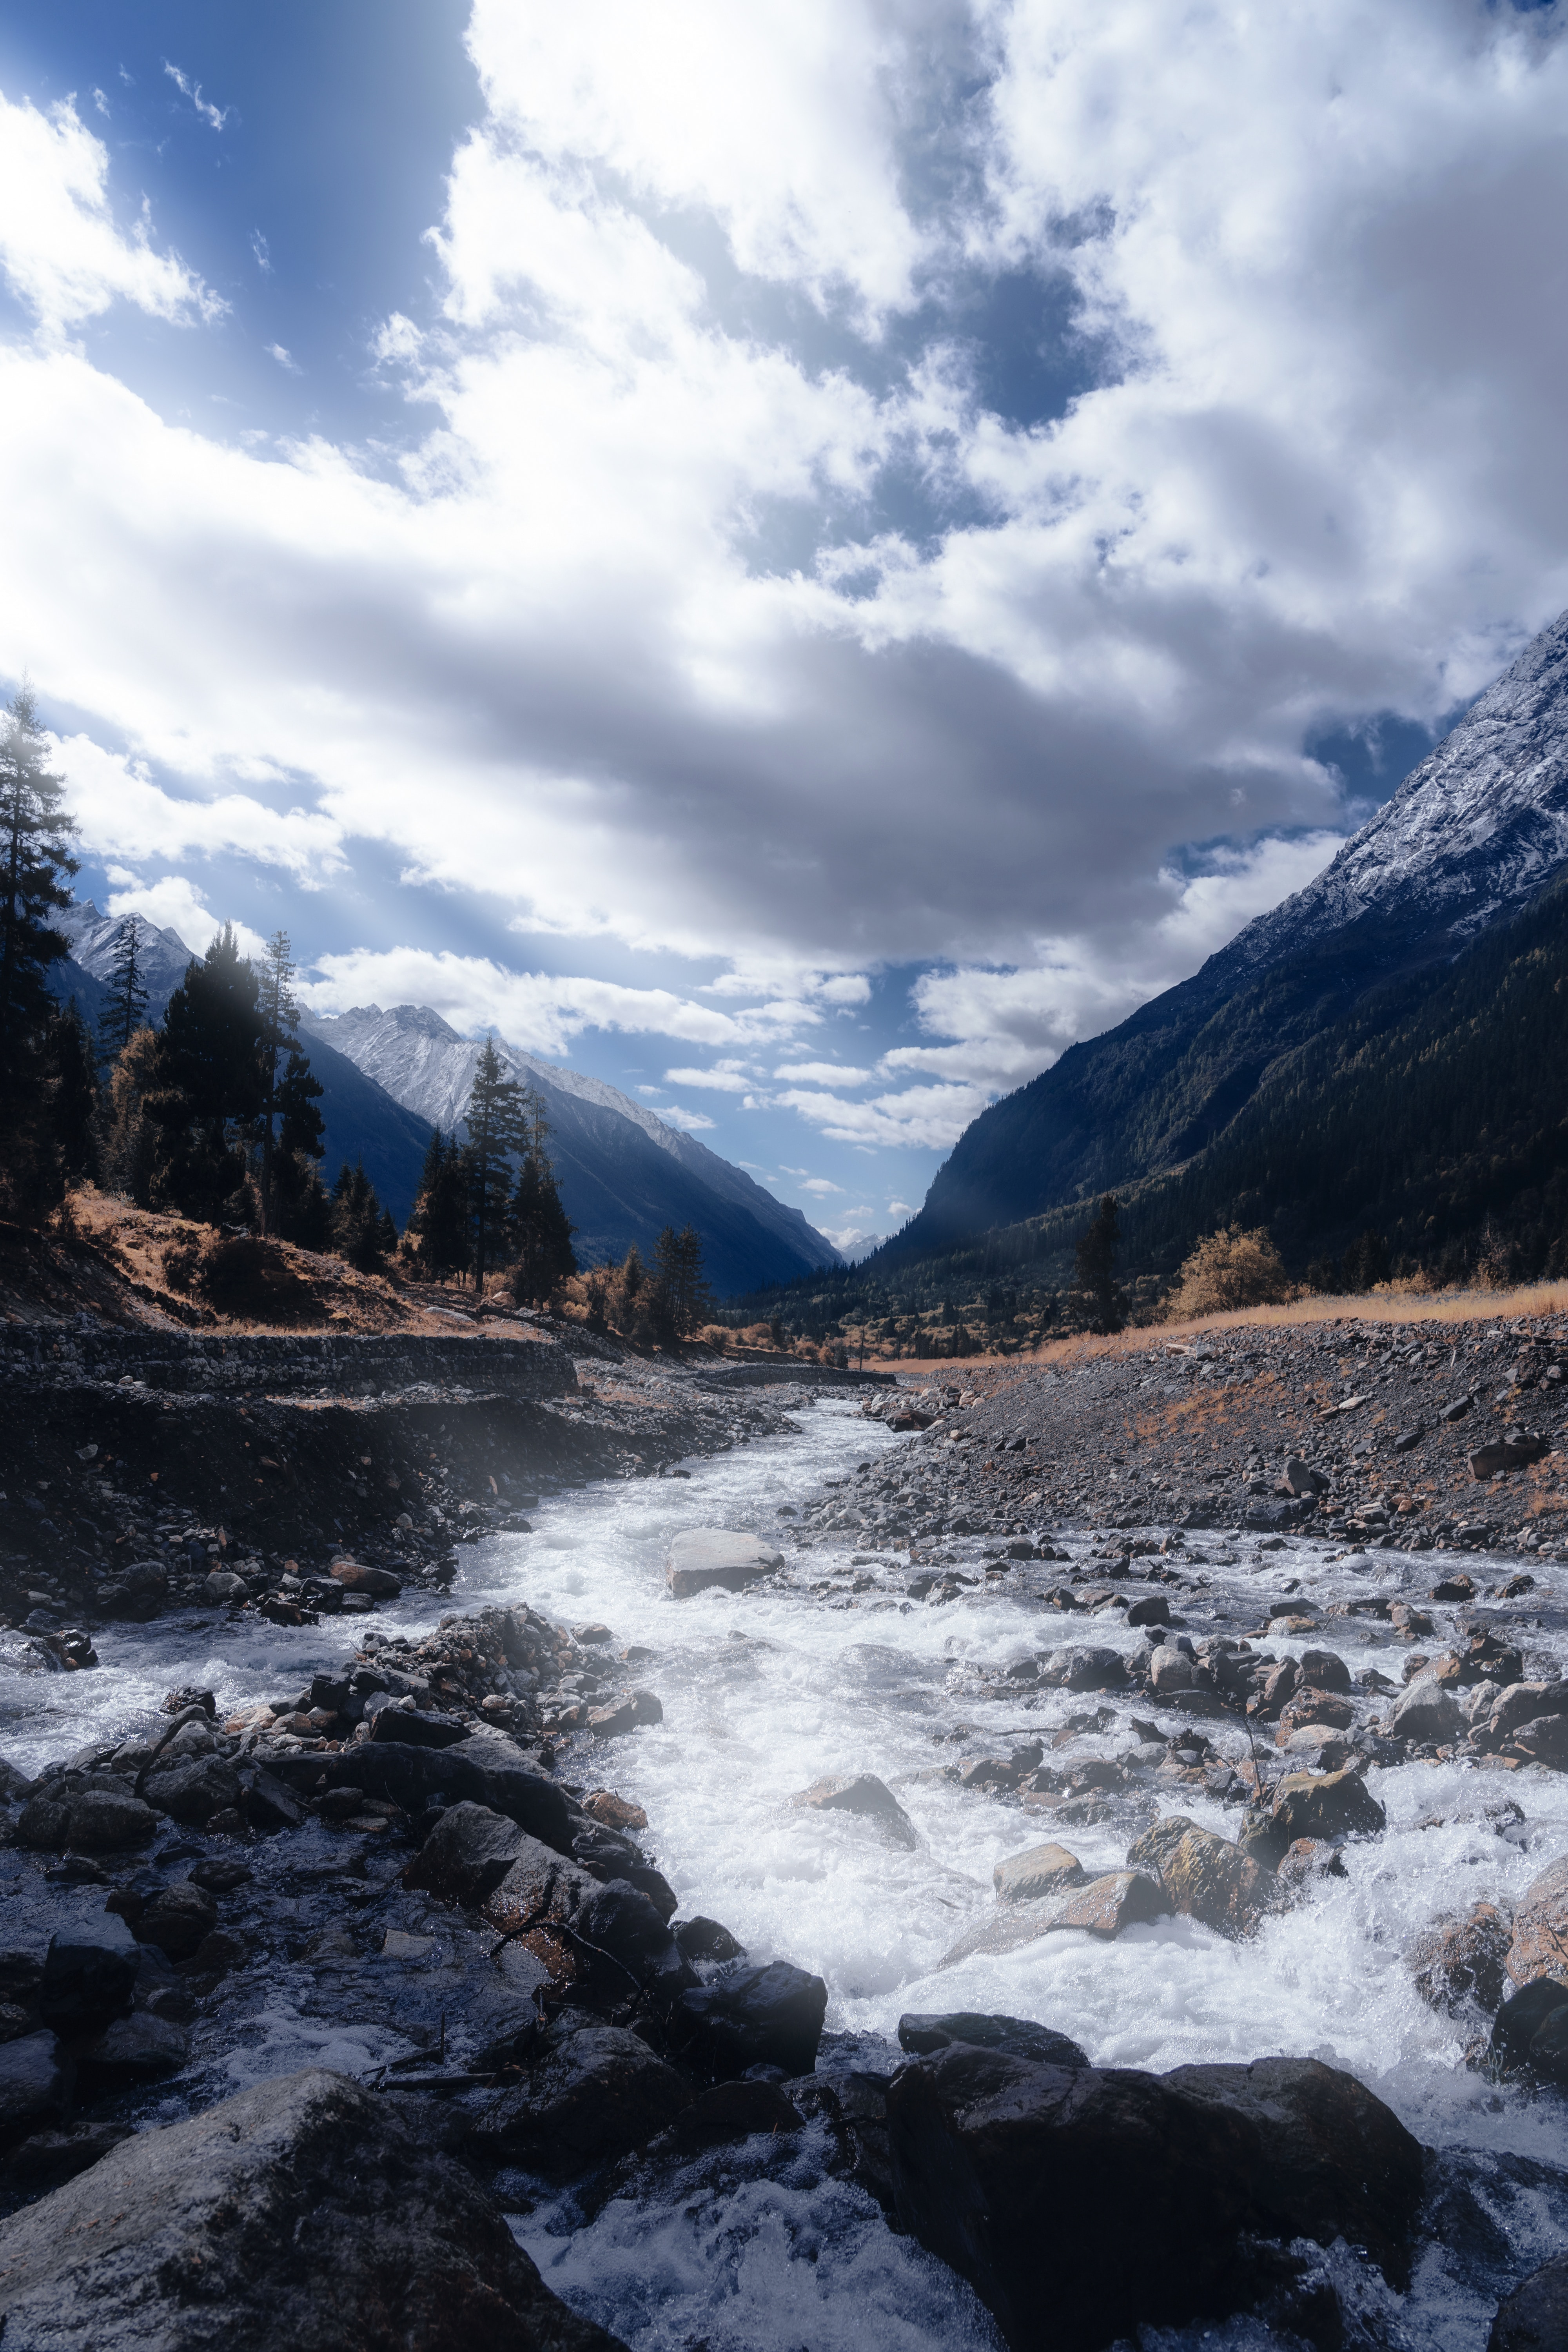 59891 download wallpaper Rivers, Creek, Brook, Nature, Mountains, Landscape screensavers and pictures for free